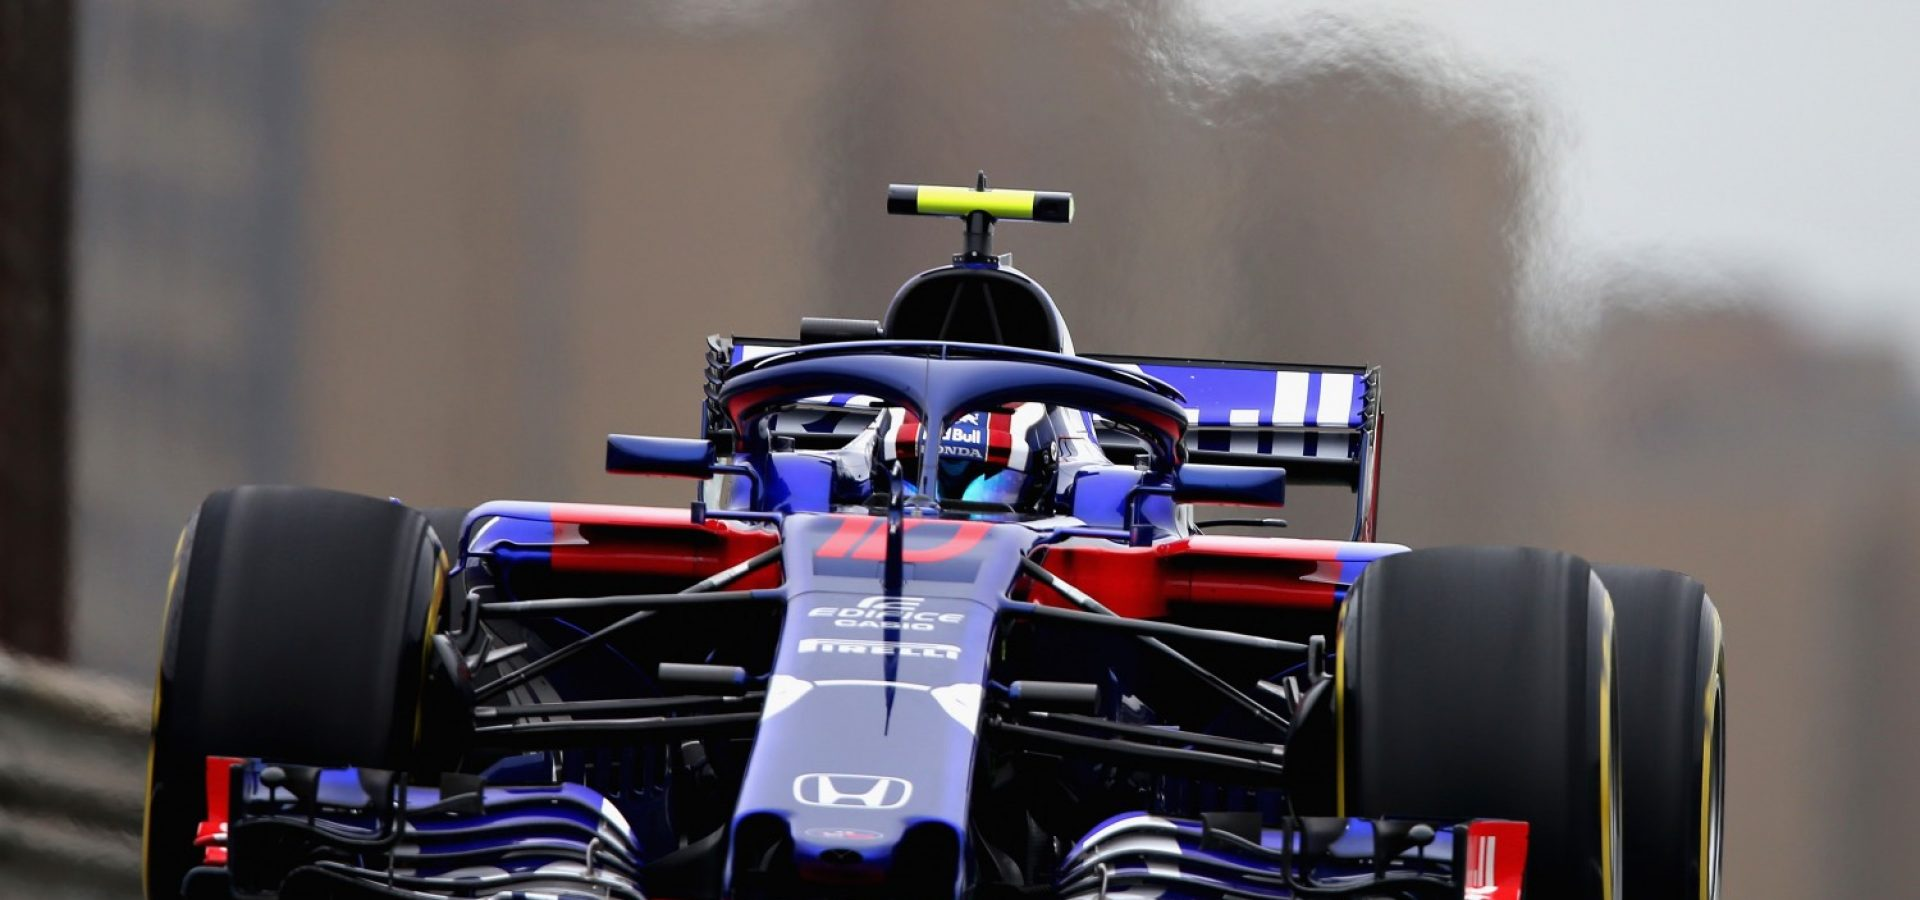 SHANGHAI, CHINA - APRIL 13: Pierre Gasly of France and Scuderia Toro Rosso driving the (10) Scuderia Toro Rosso STR13 Honda on track during practice for the Formula One Grand Prix of China at Shanghai International Circuit on April 13, 2018 in Shanghai, China.  (Photo by Charles Coates/Getty Images)